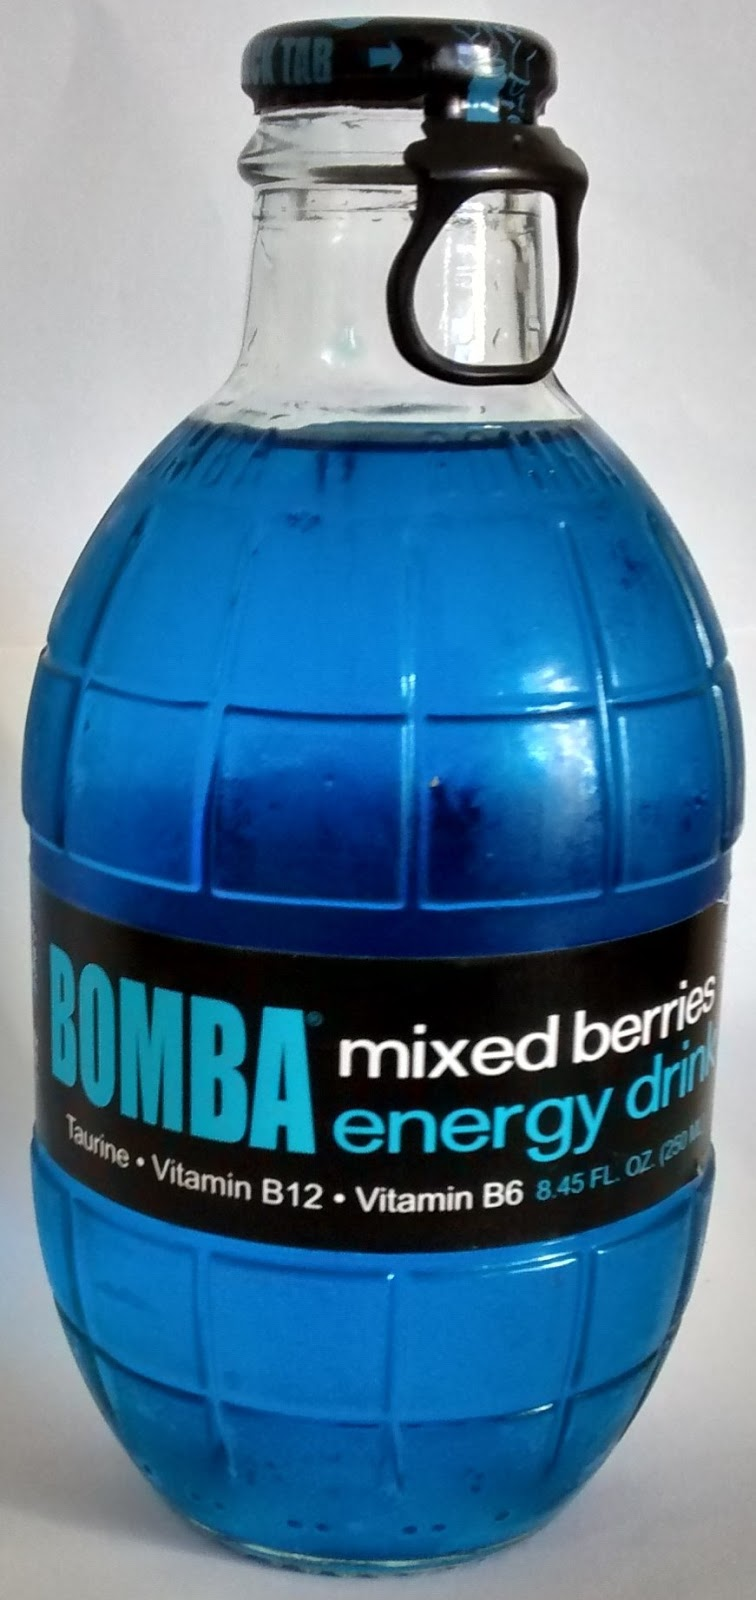 Caffeine King Bomba Mixed Berries Energy Drink Review